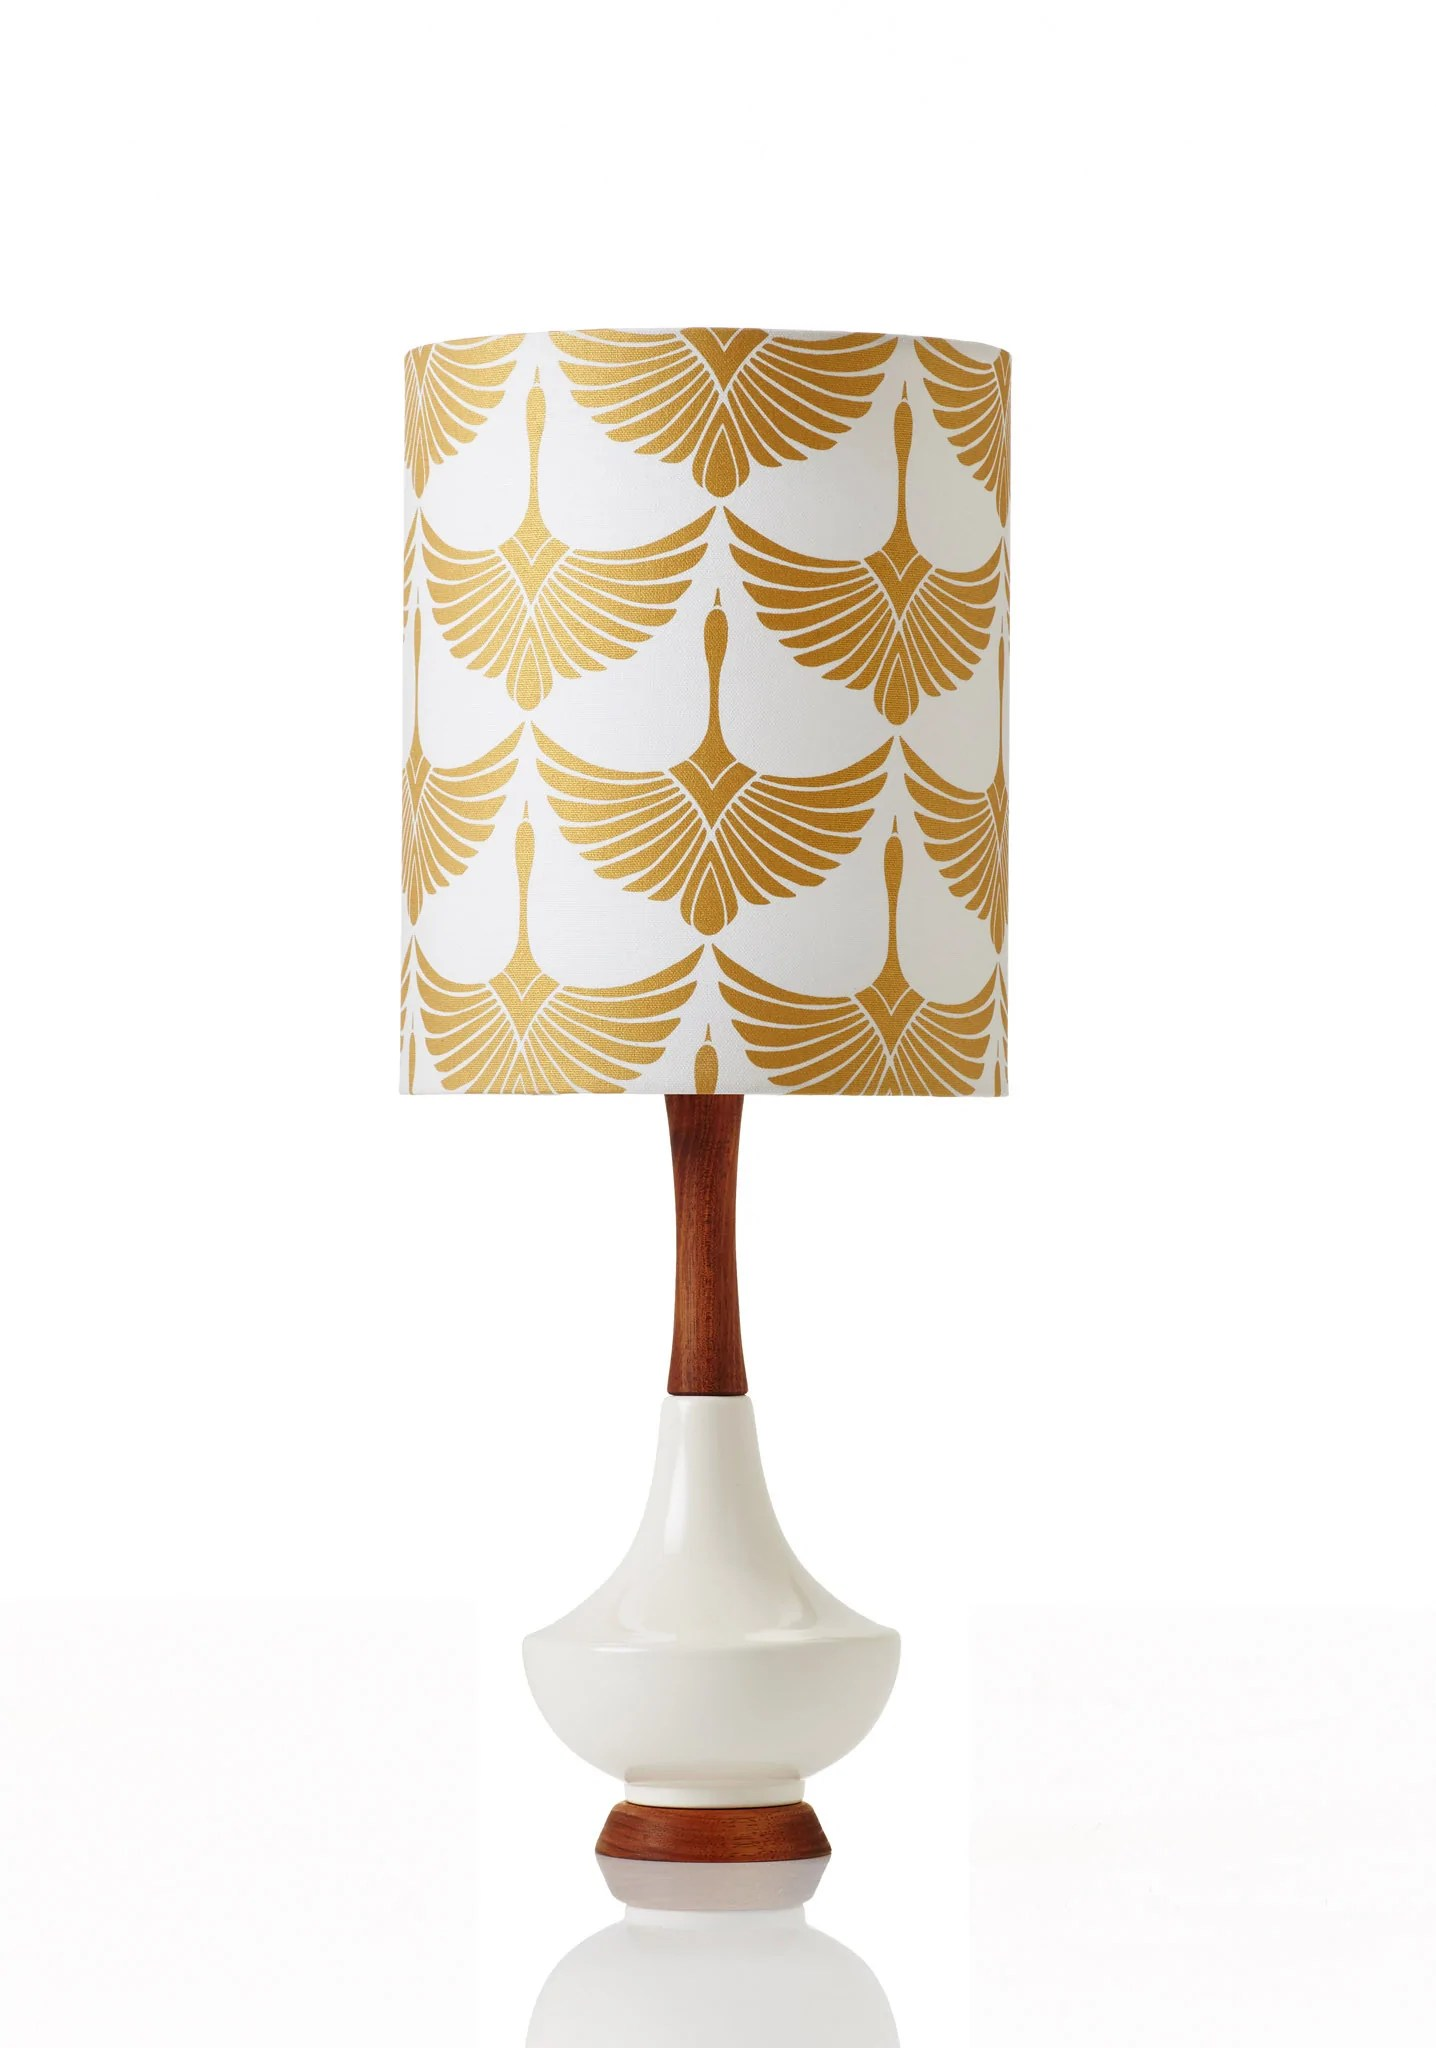 Retro Print Revival - Mid Century inspired lamps and planters